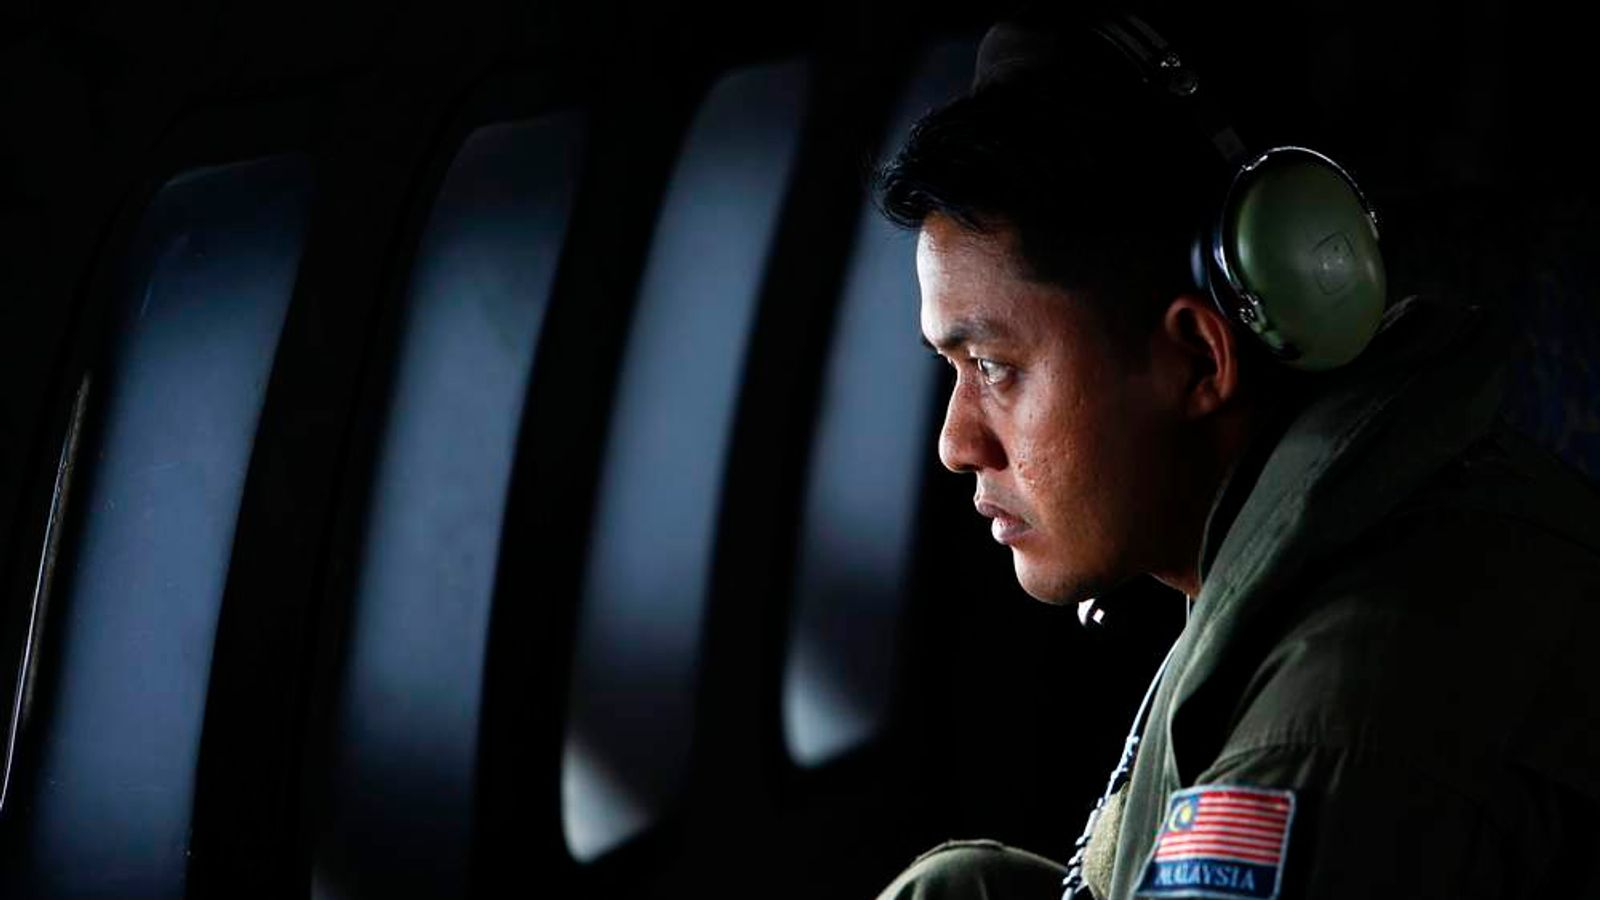 A crew member from the Royal Malaysian Air Force looks through the window of a Malaysian Air Force CN235 aircraft during a Search and Rescue operation to find the missing Malaysia Airlines flight MH370, in the Straits of Malacca